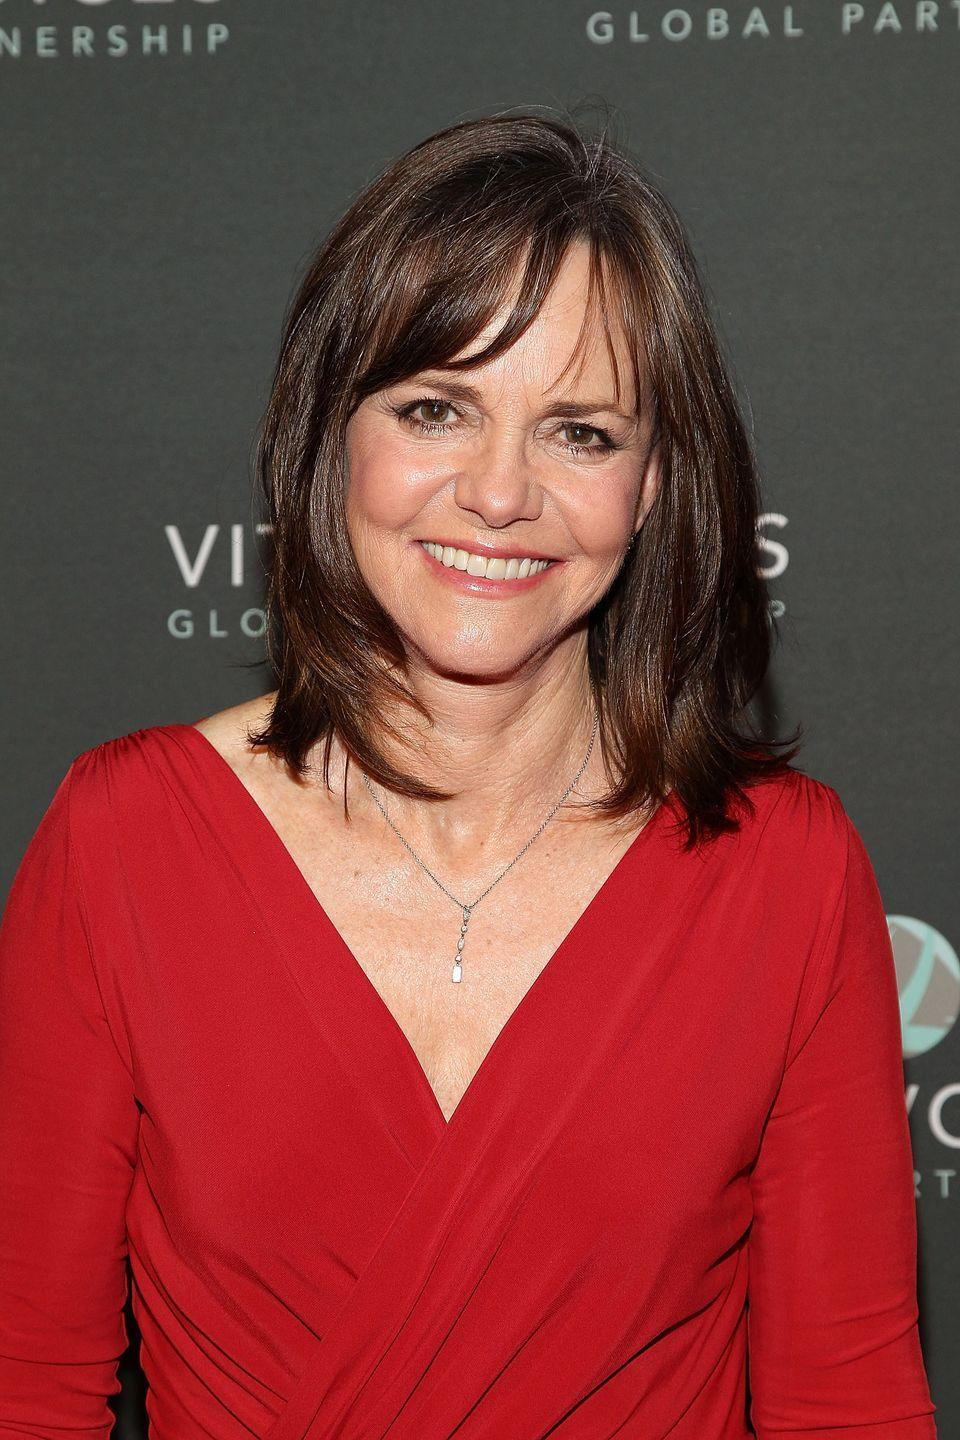 """<p>Field was not a fan of the <em>Spiderman </em>sequel. Field <a href=""""http://www.vulture.com/2016/03/sally-field-spider-man.html"""" rel=""""nofollow noopener"""" target=""""_blank"""" data-ylk=""""slk:told Howard Stern"""" class=""""link rapid-noclick-resp"""">told Howard Stern</a>, """"It's really hard to find a three-dimensional character in it, and you work it as much as you can, but you can't put ten pounds of sh*t in a five-pound bag.""""</p>"""